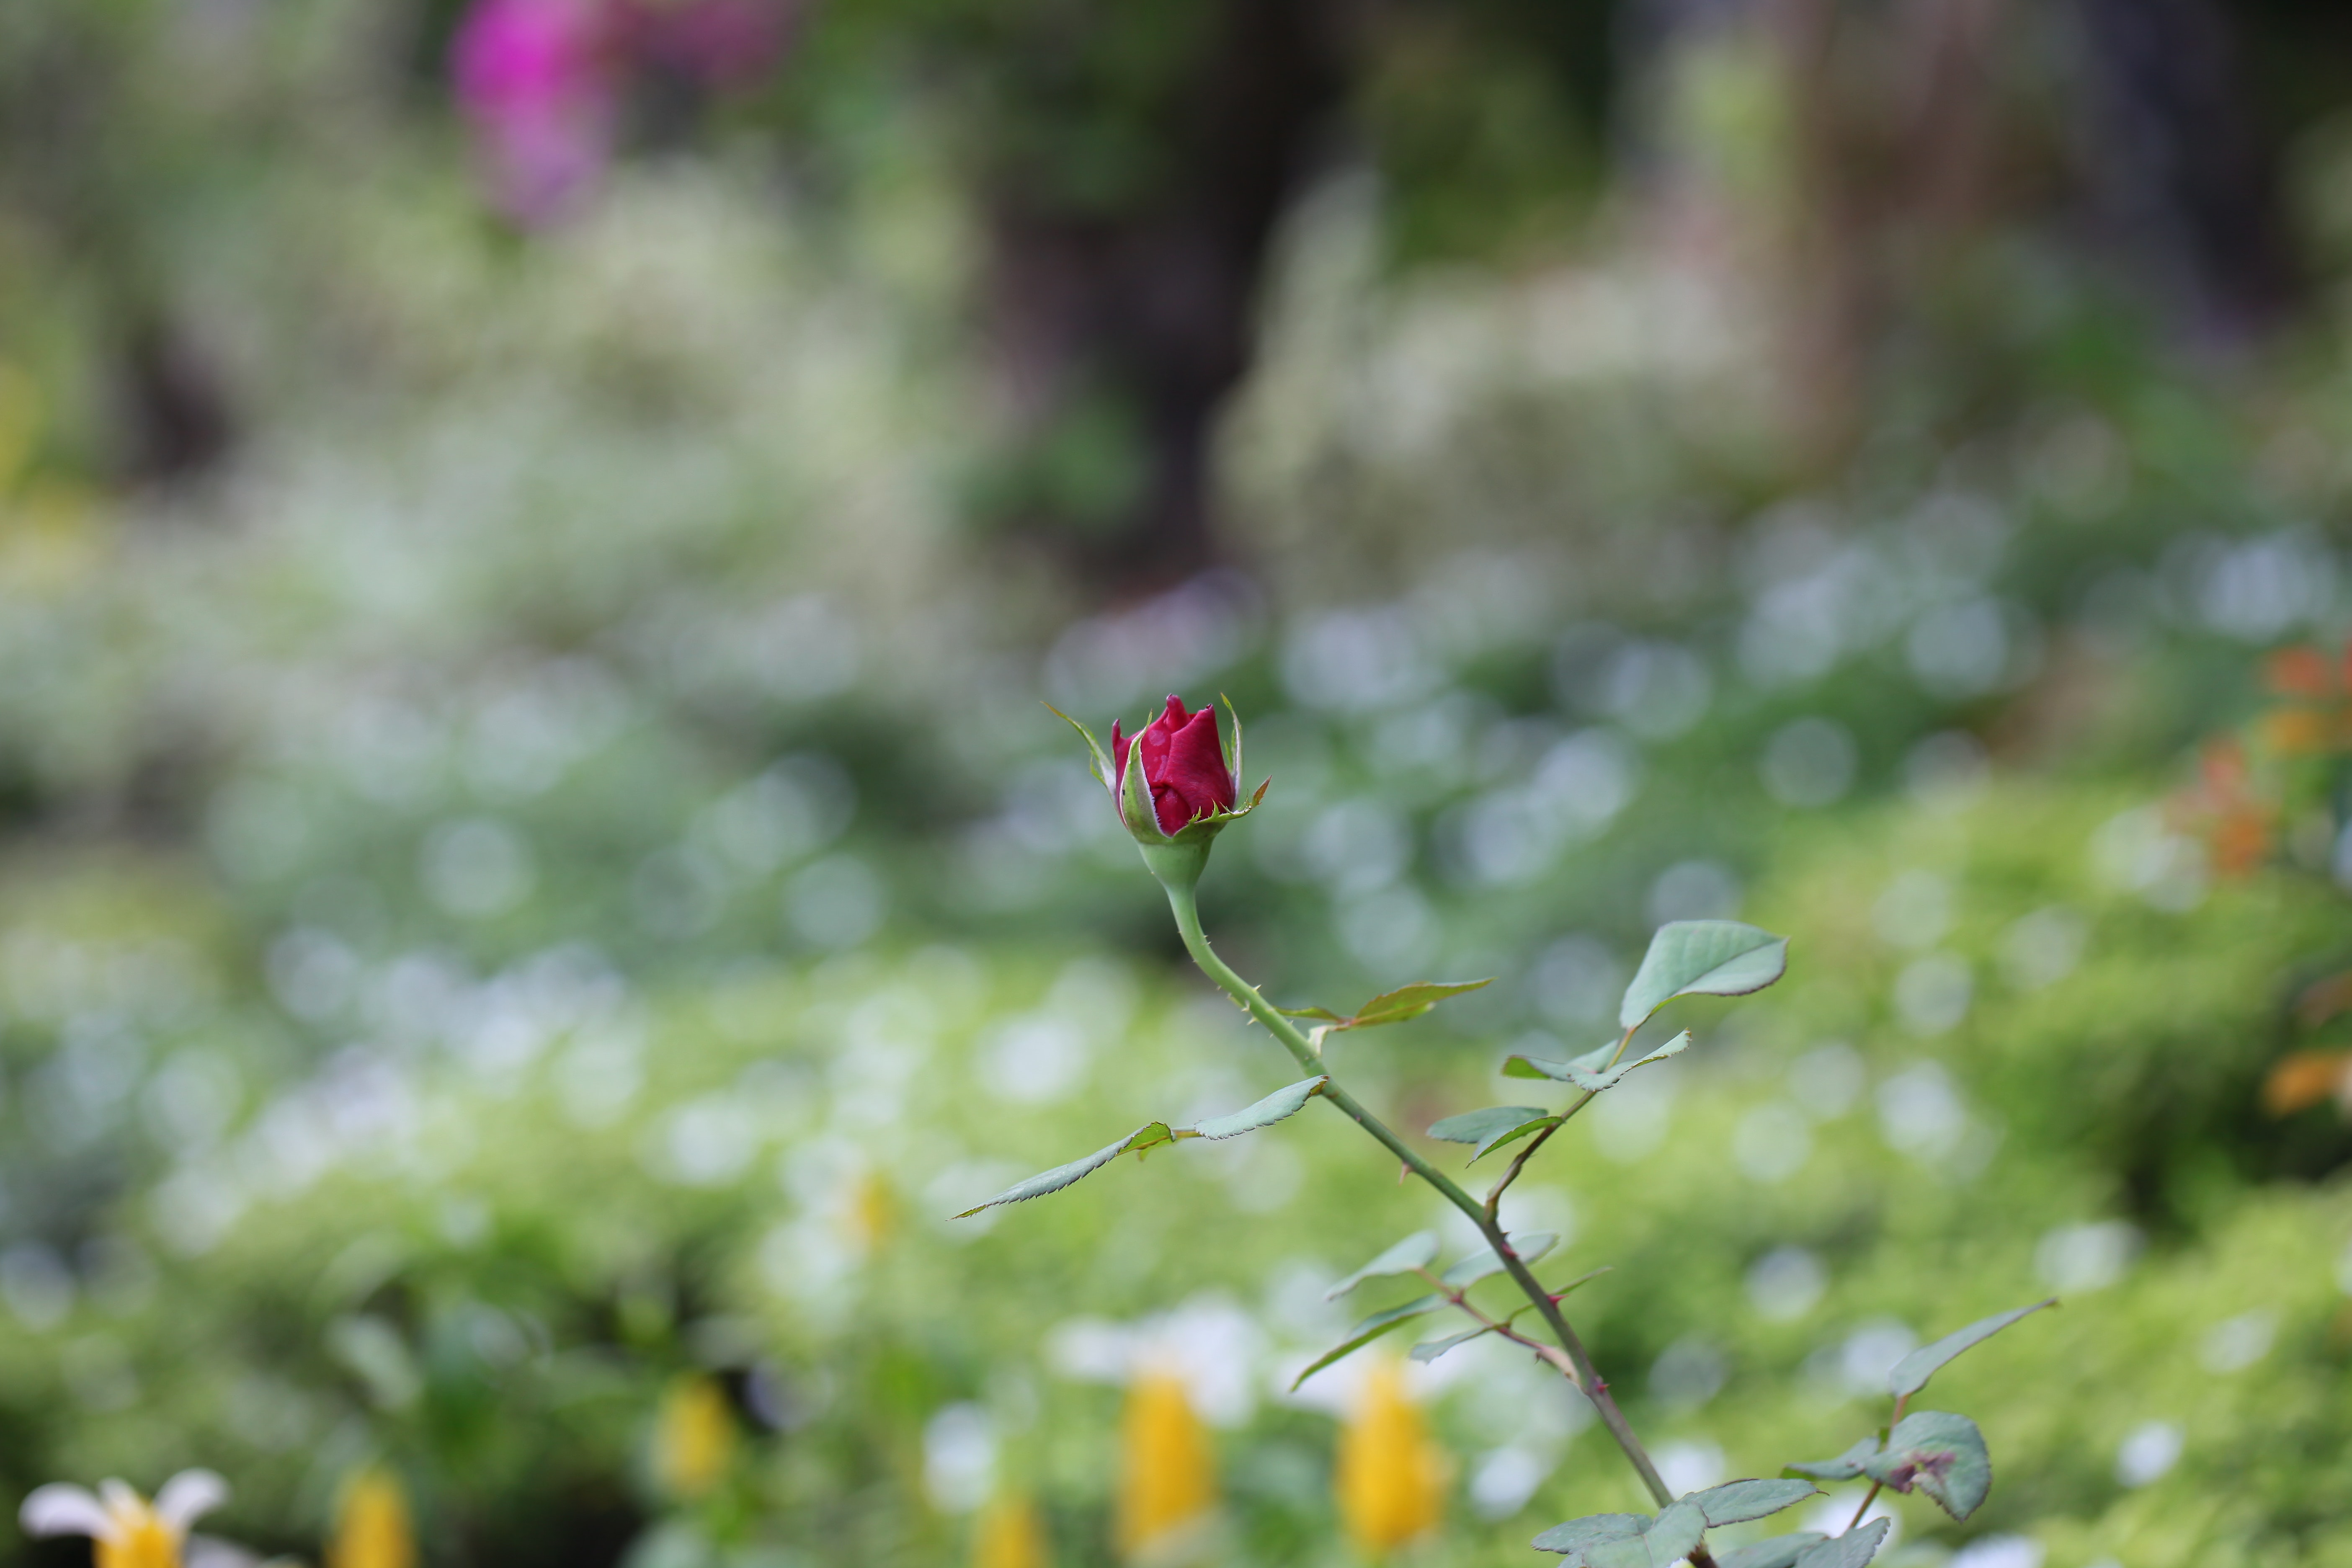 Selective focus photography of a red rose bud